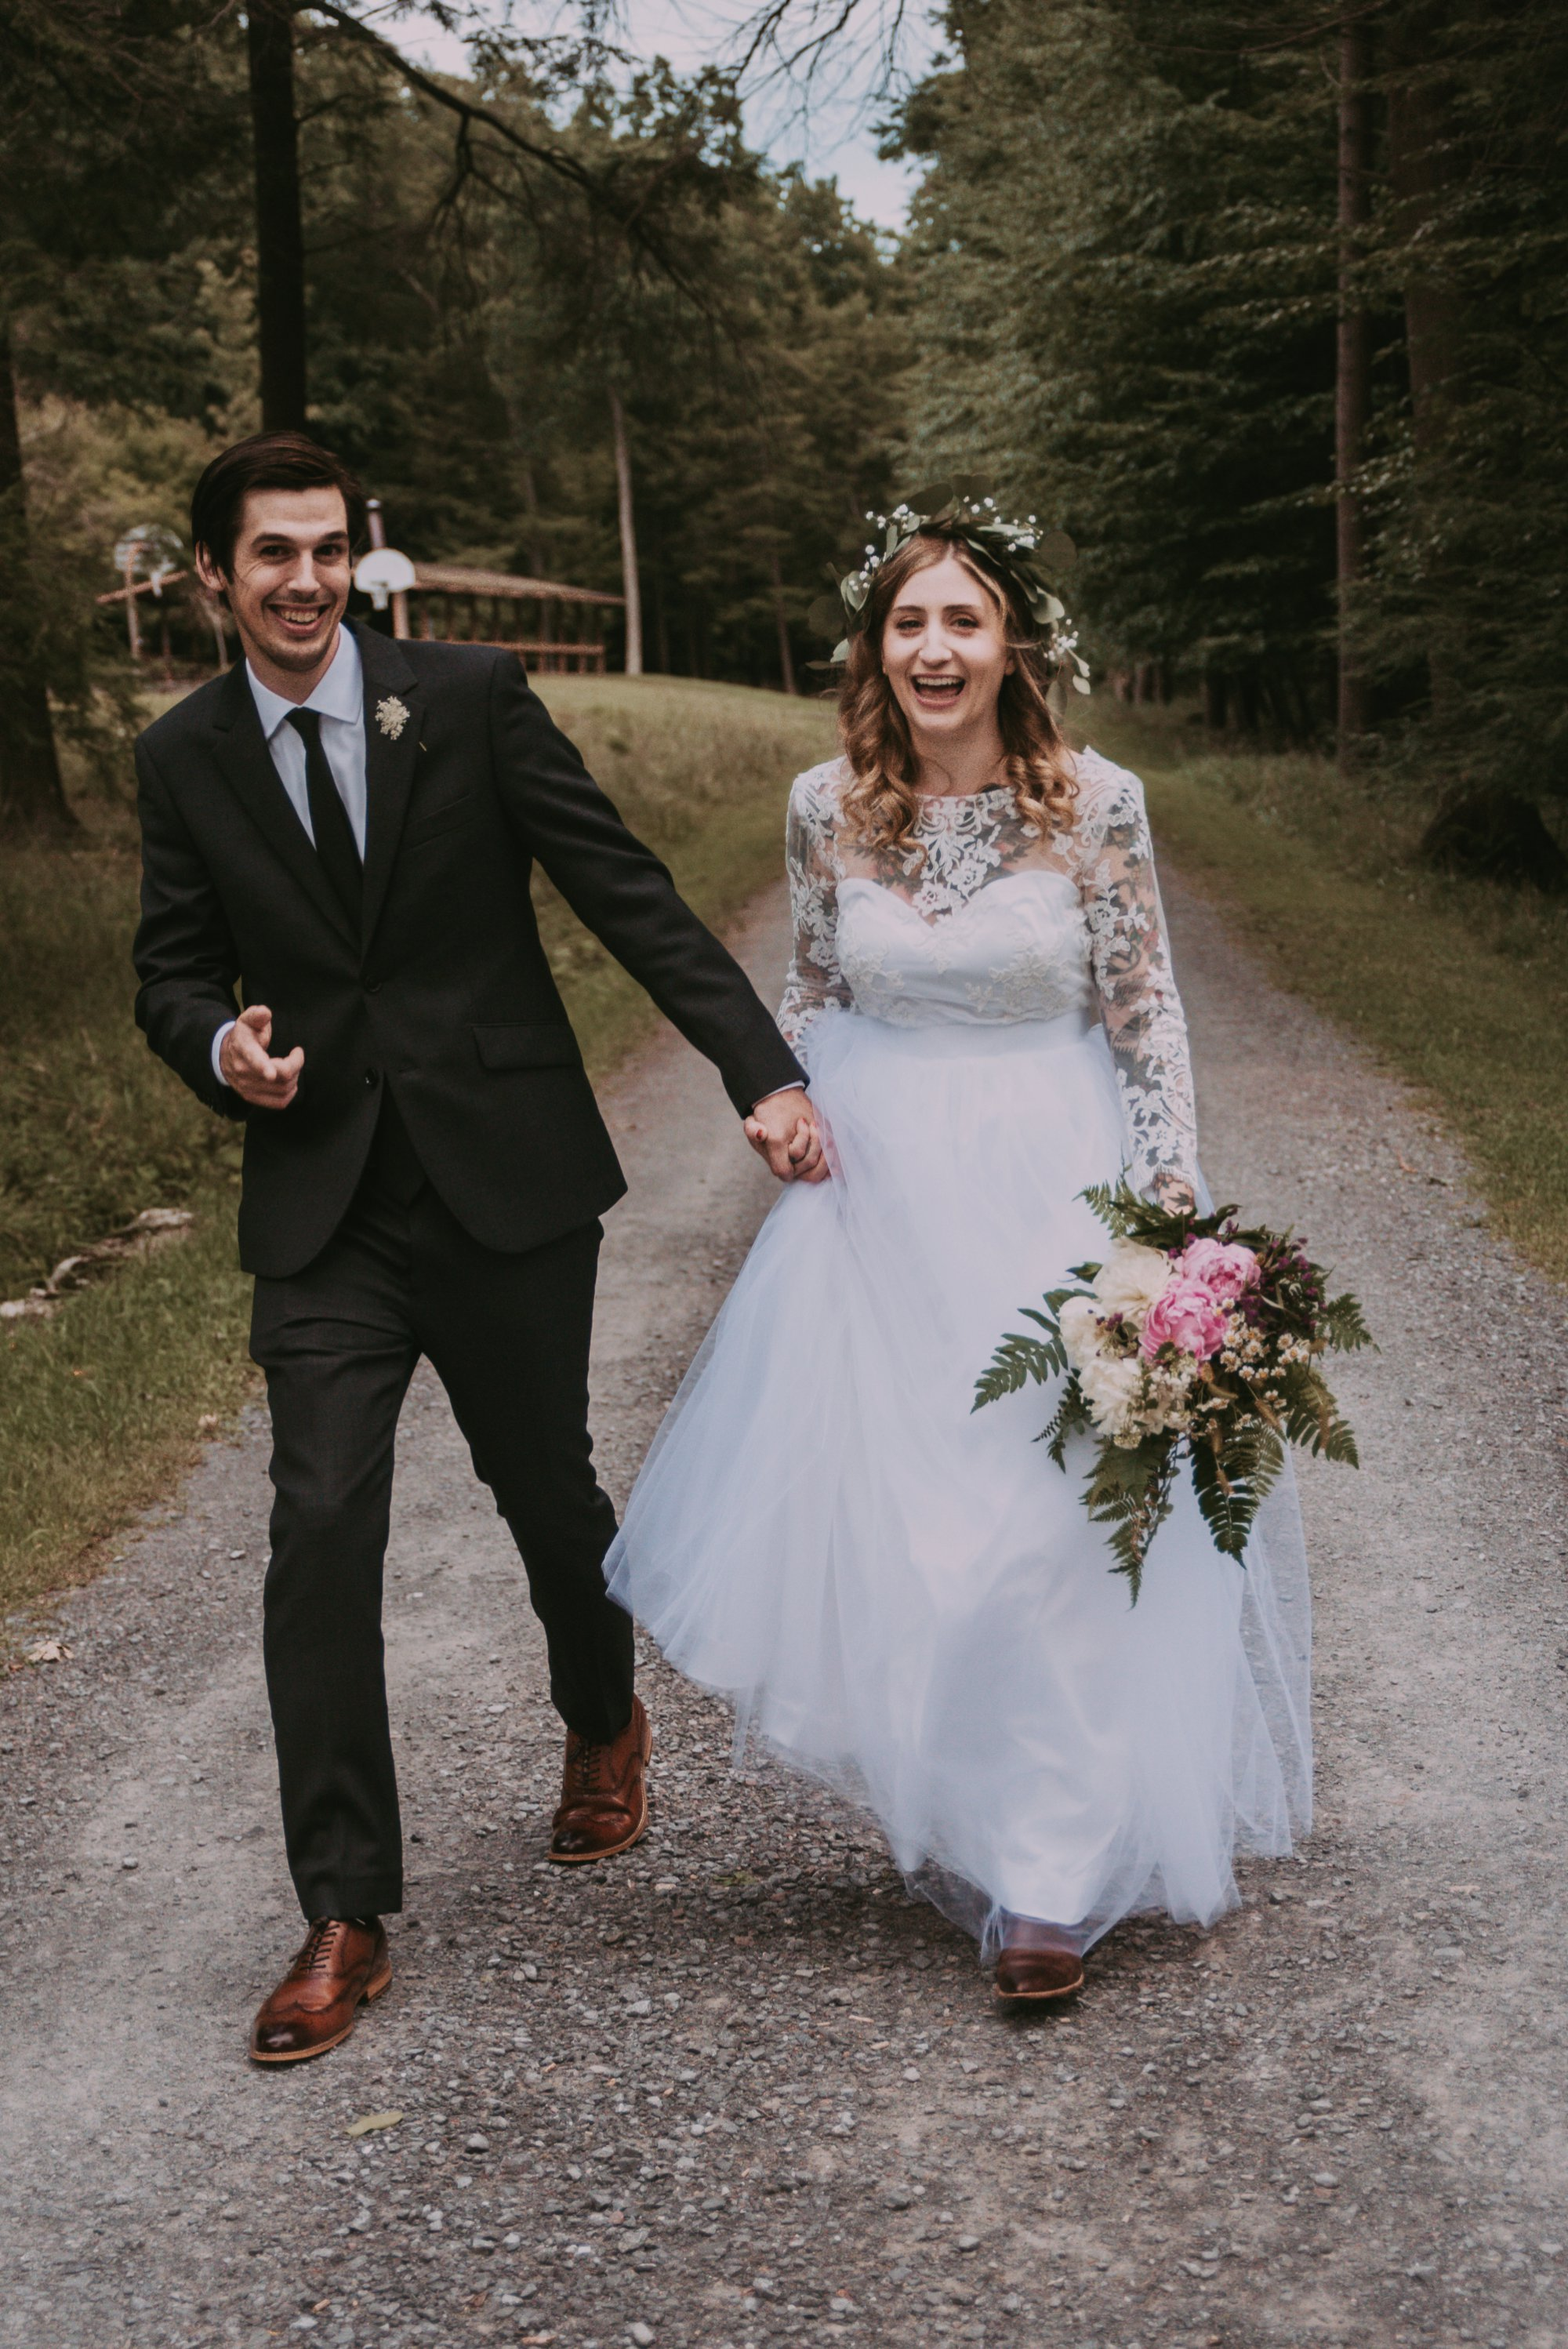 Rustic Intimate Vegan Forest Wedding with Handmade Dress. Couple Laughing.